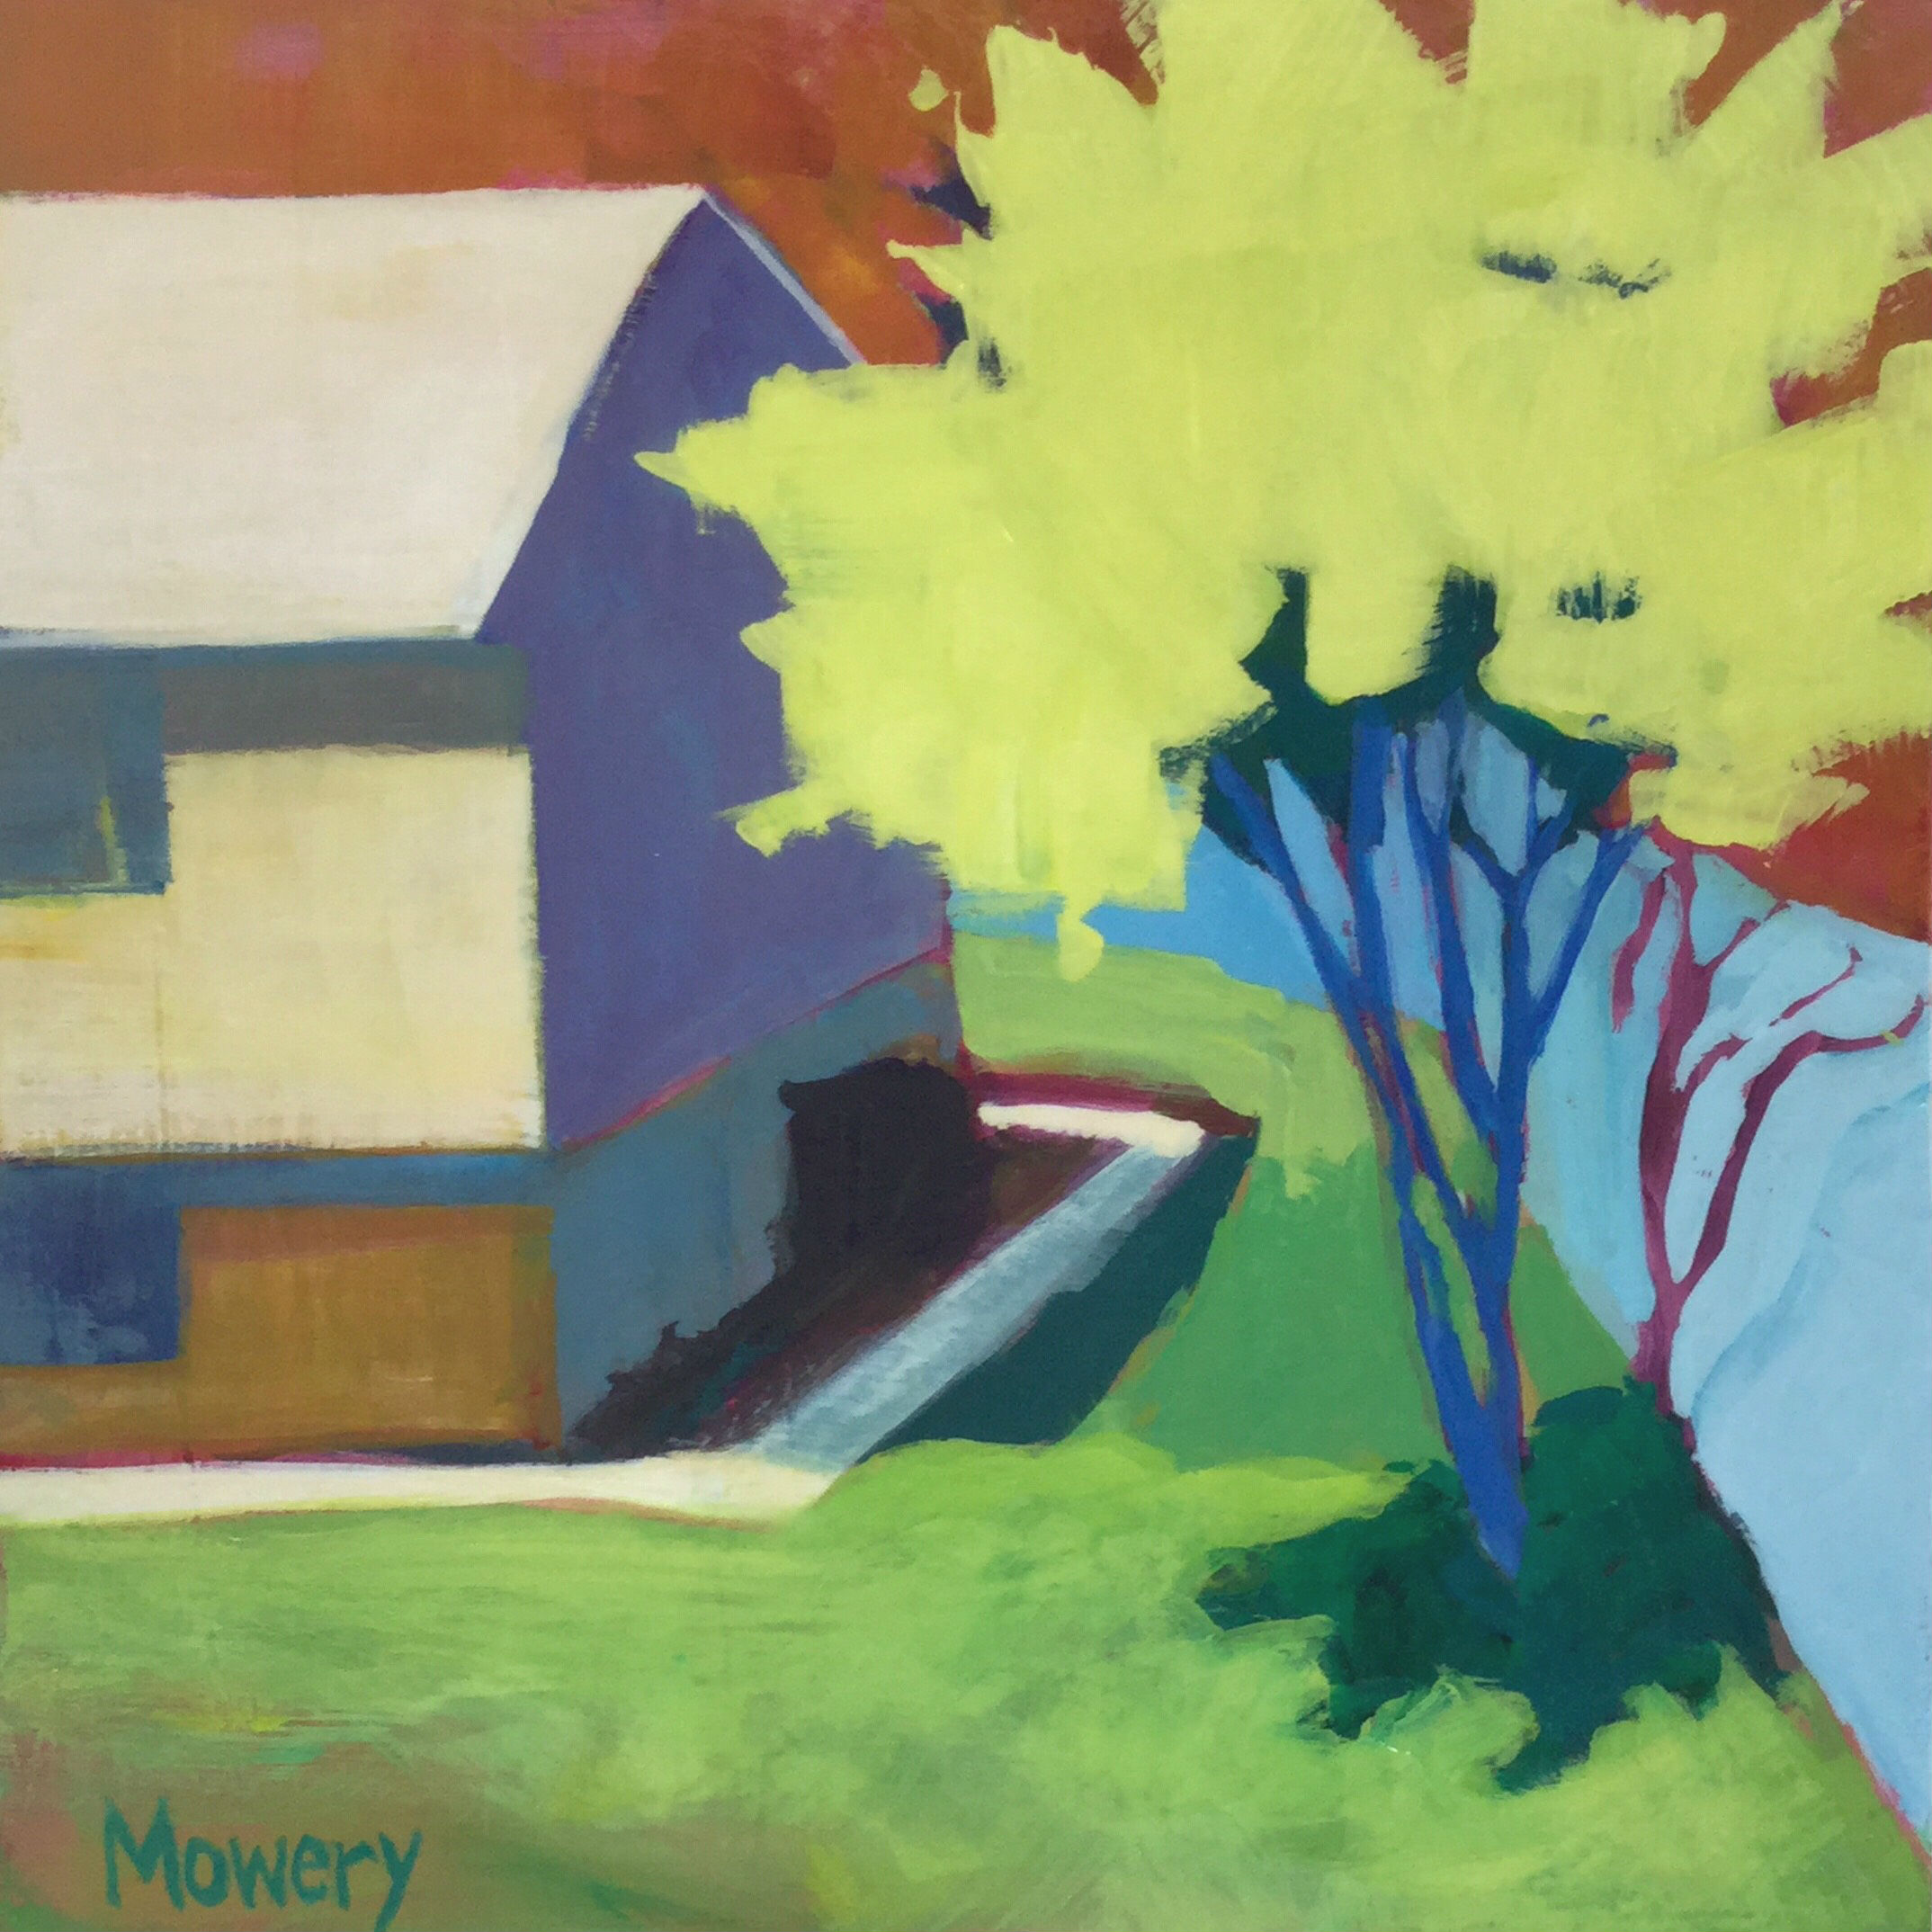 This is an acrylic painting of of a suburban house with a blue privacy fence and a crepe myrtle tree by artist Barb Mowery.